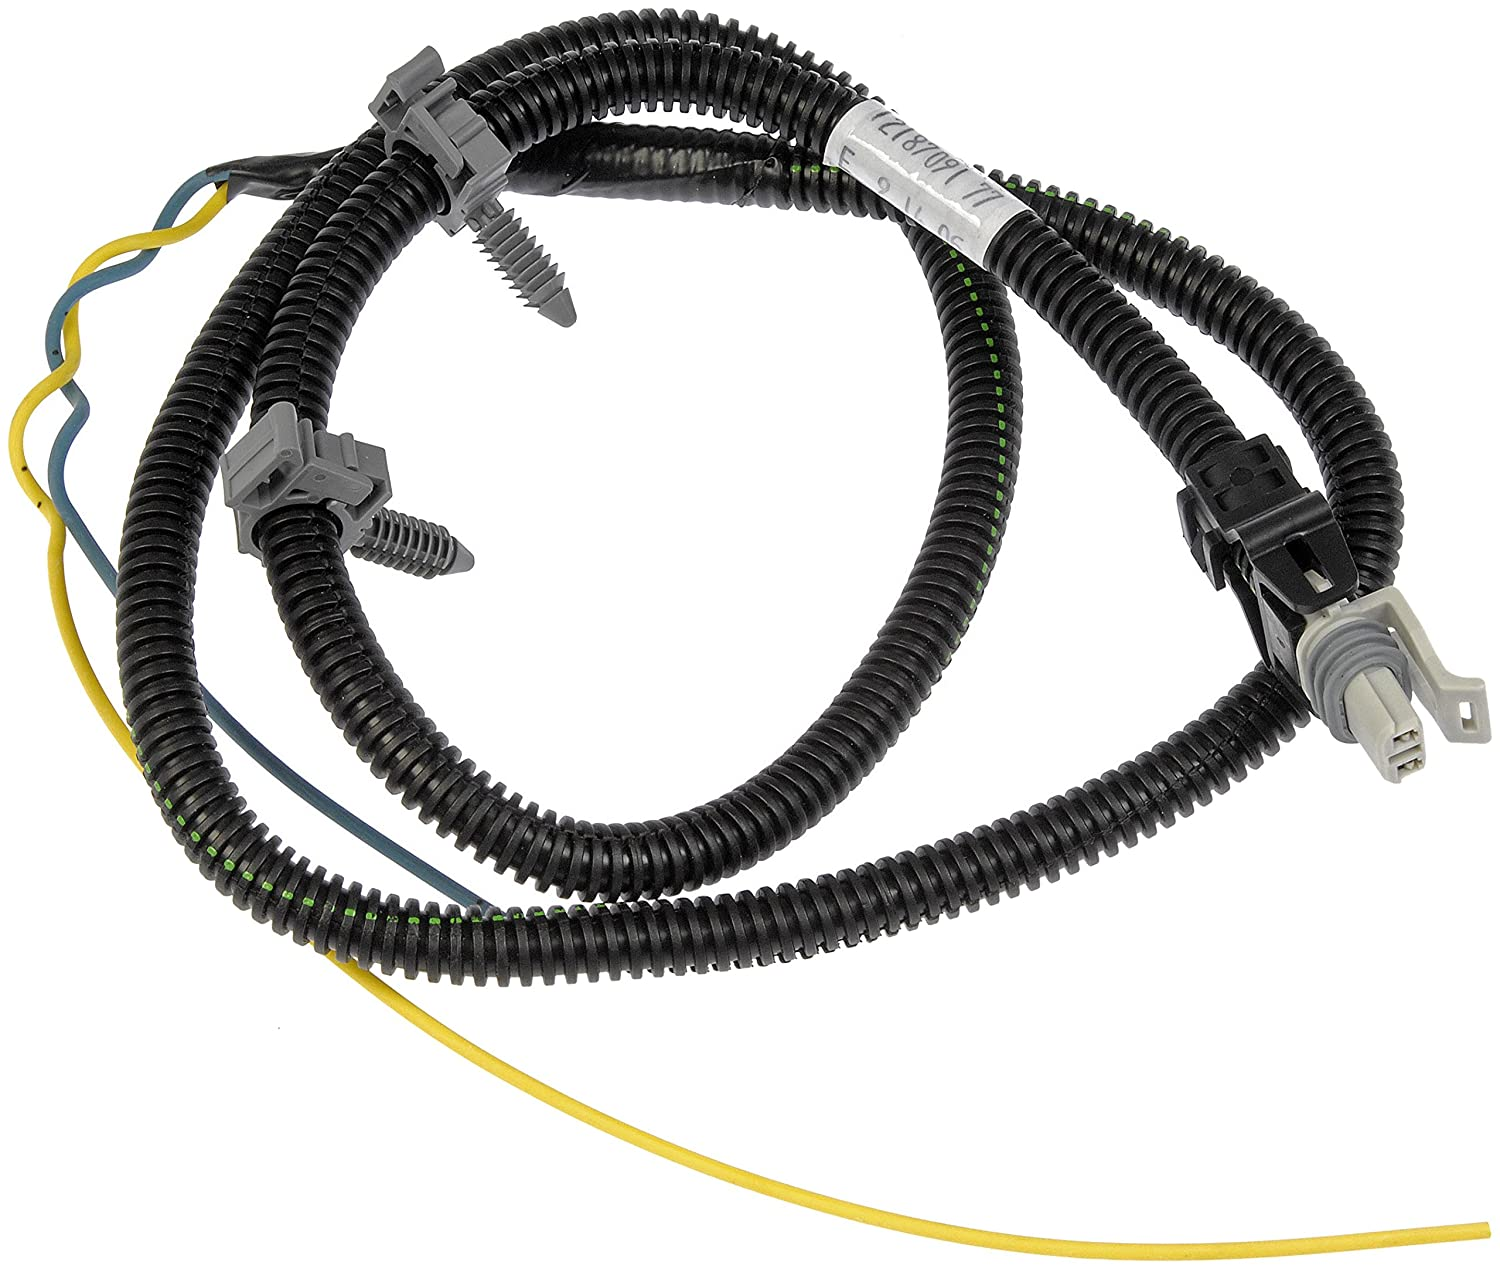 91H9mPlOGsL._SL1500_ amazon com dorman 970 007 wheel speed sensor wiring harness dorman wiring harness at webbmarketing.co